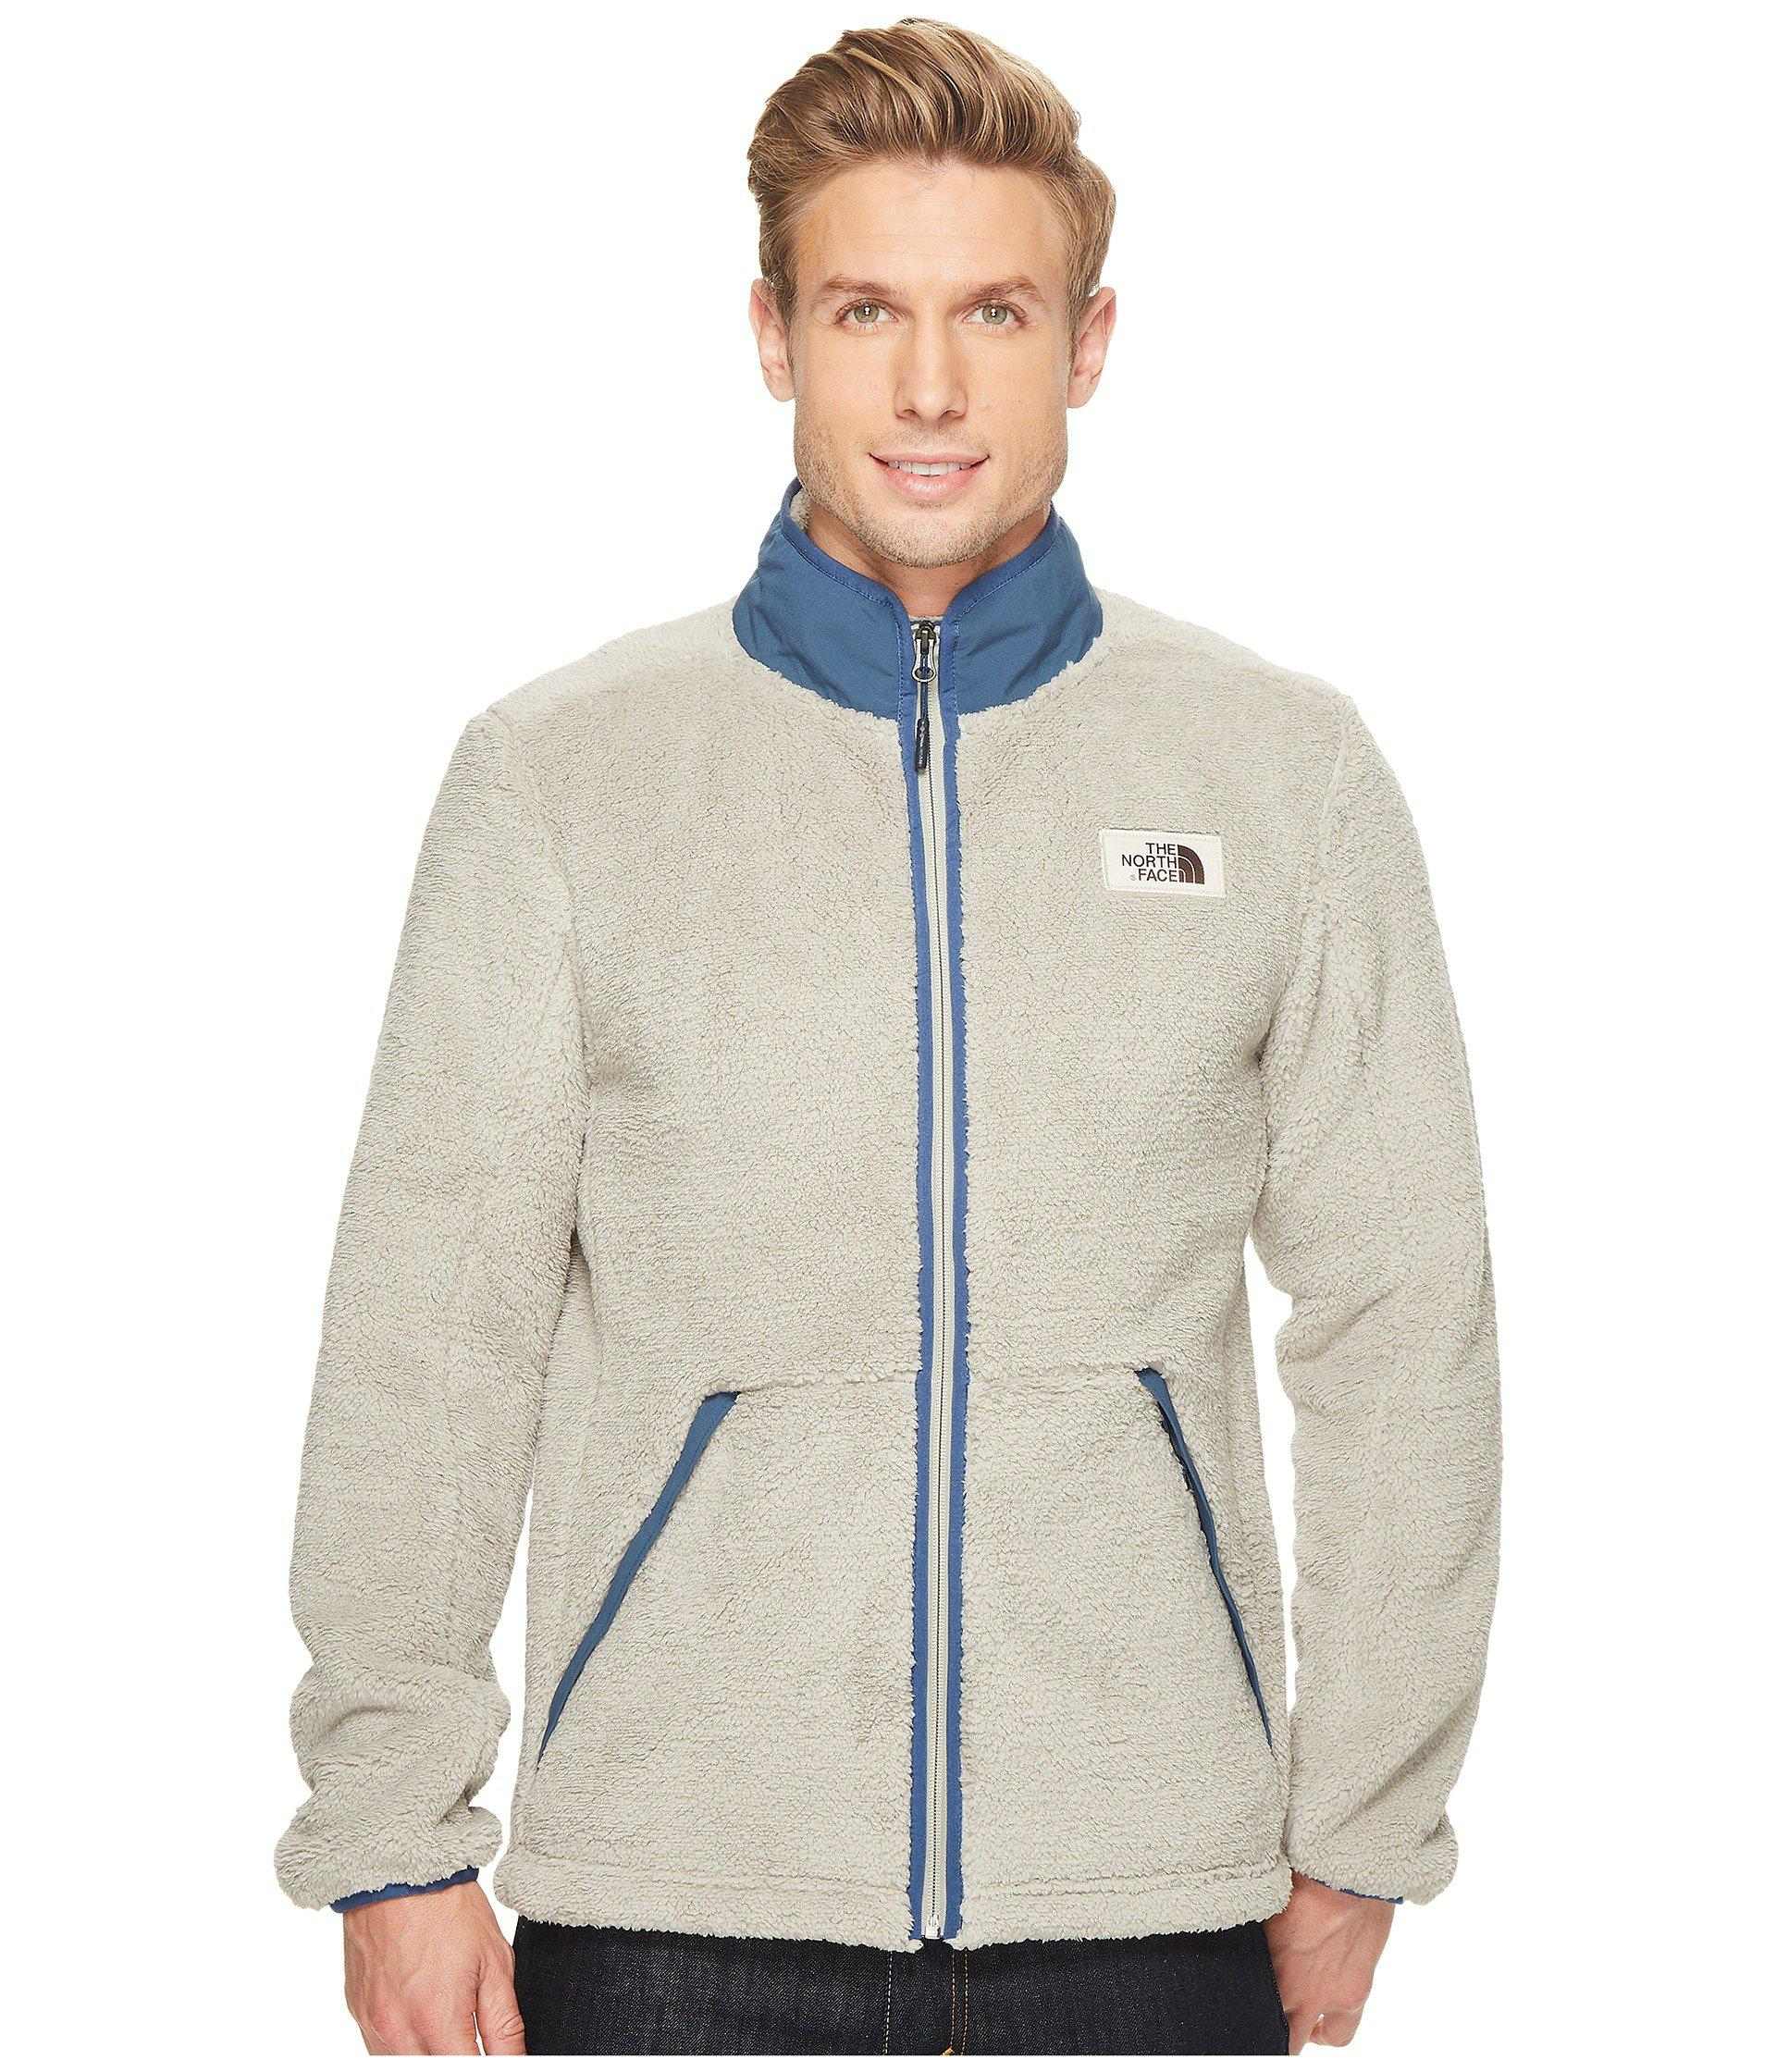 193336c0da8 Lyst - The North Face Campshire Full Zip for Men